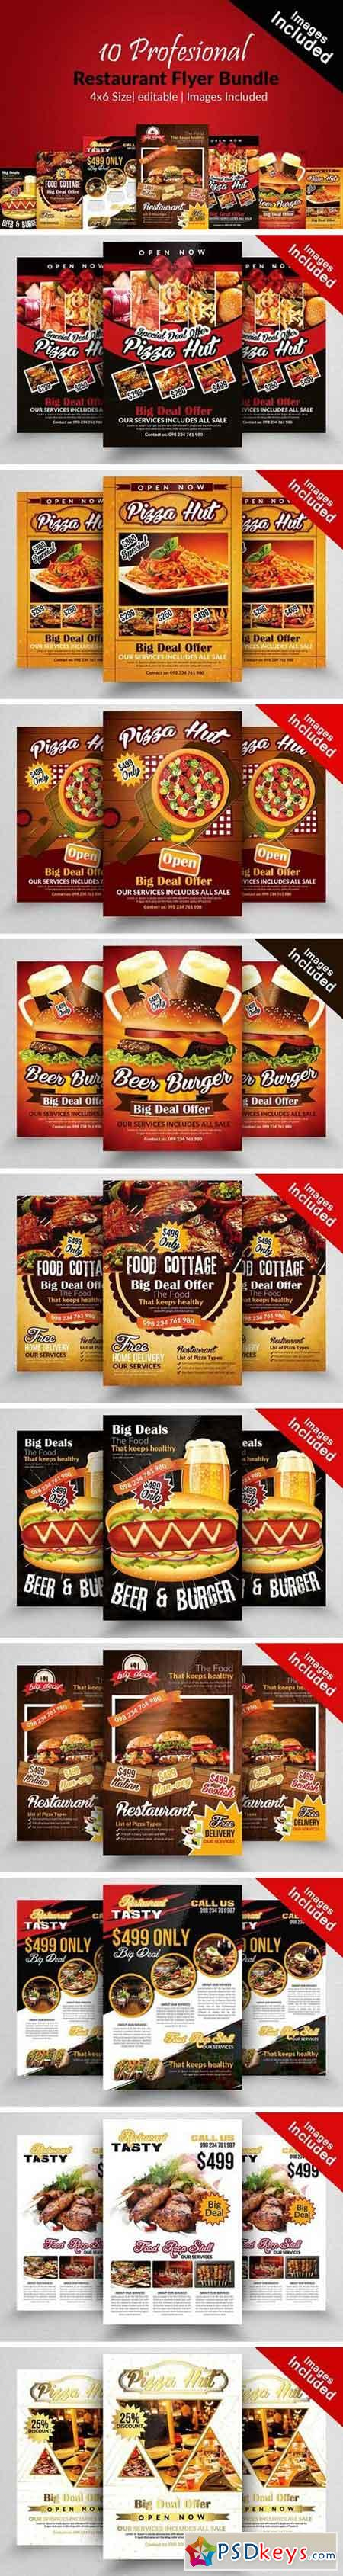 10 Restaurant Flyer Templates Bundle 2104260